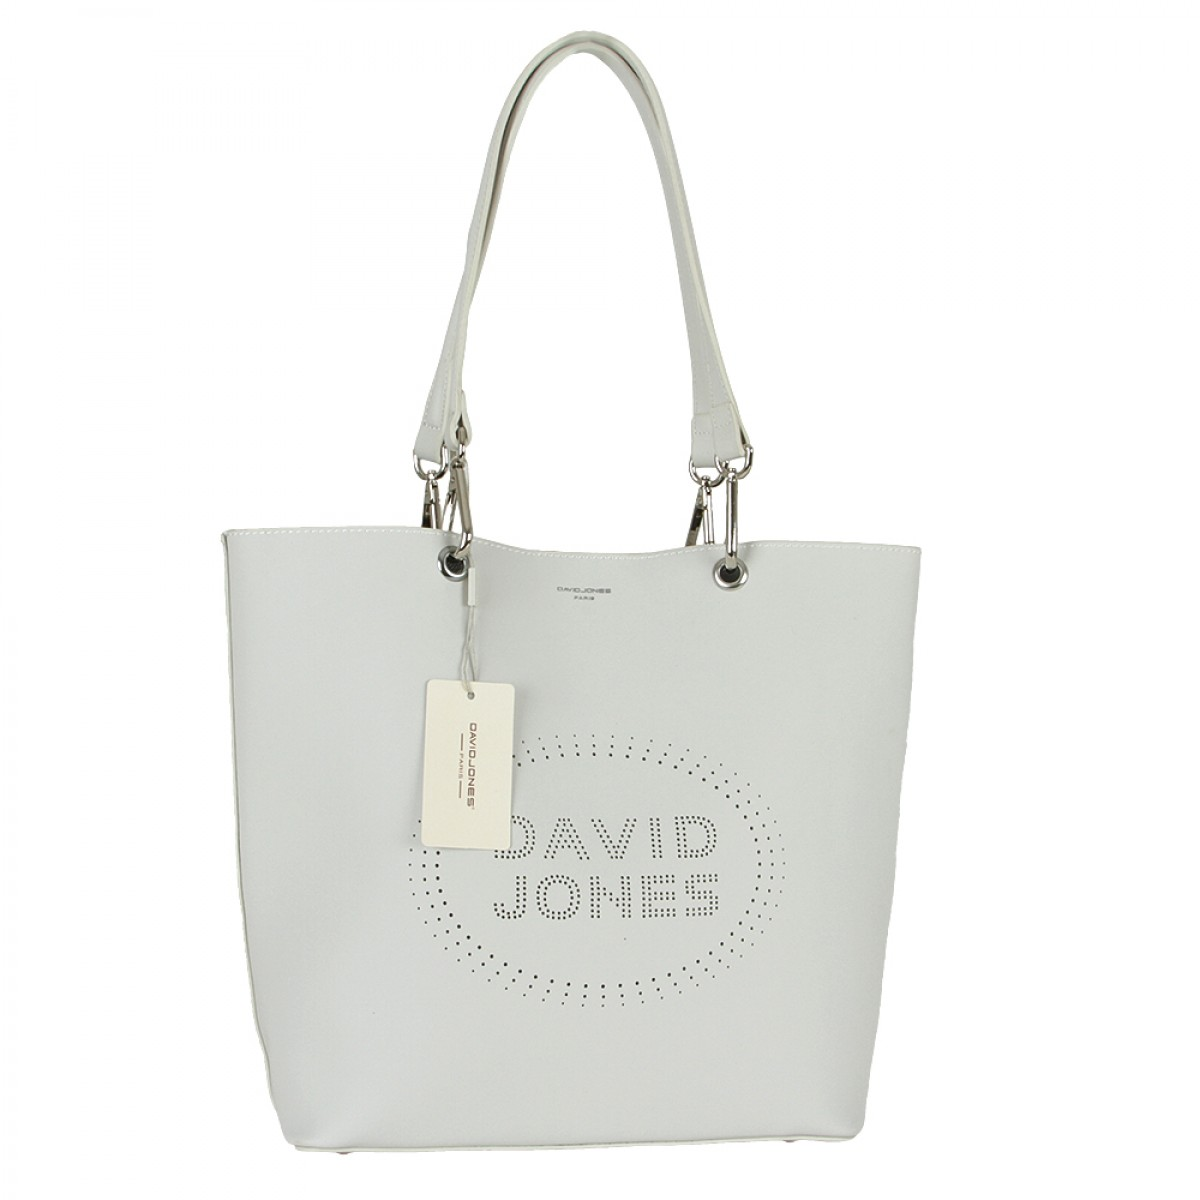 Жіноча сумка David Jones 6223-1 CREAMY WHITE